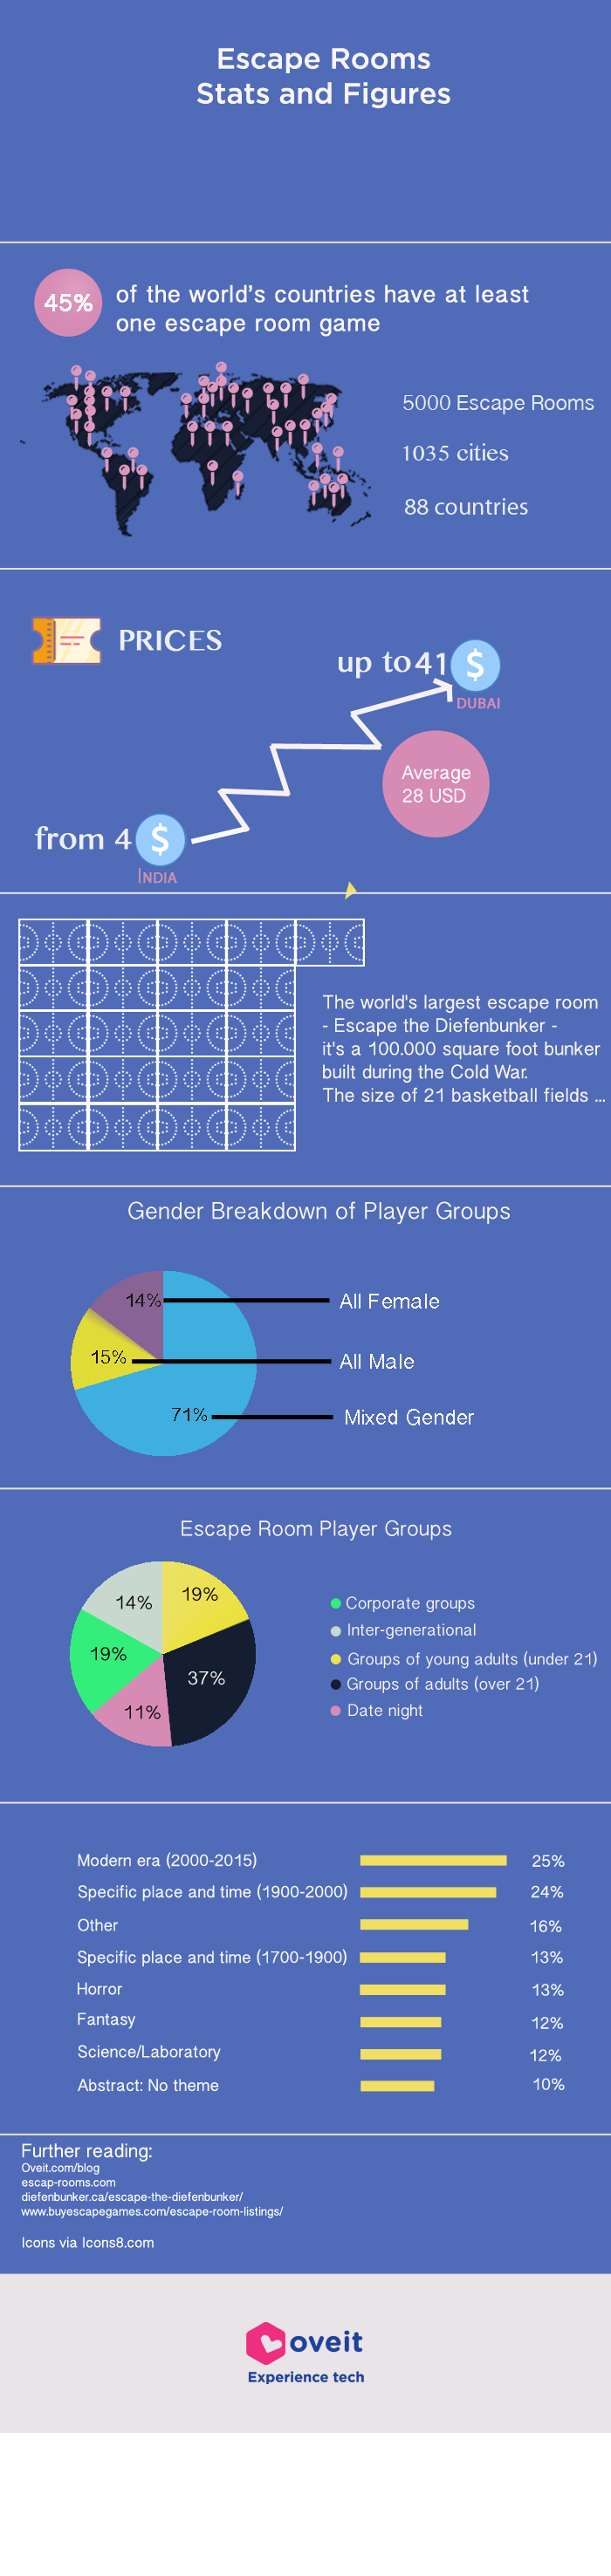 infographic with stats and figures on escape rooms